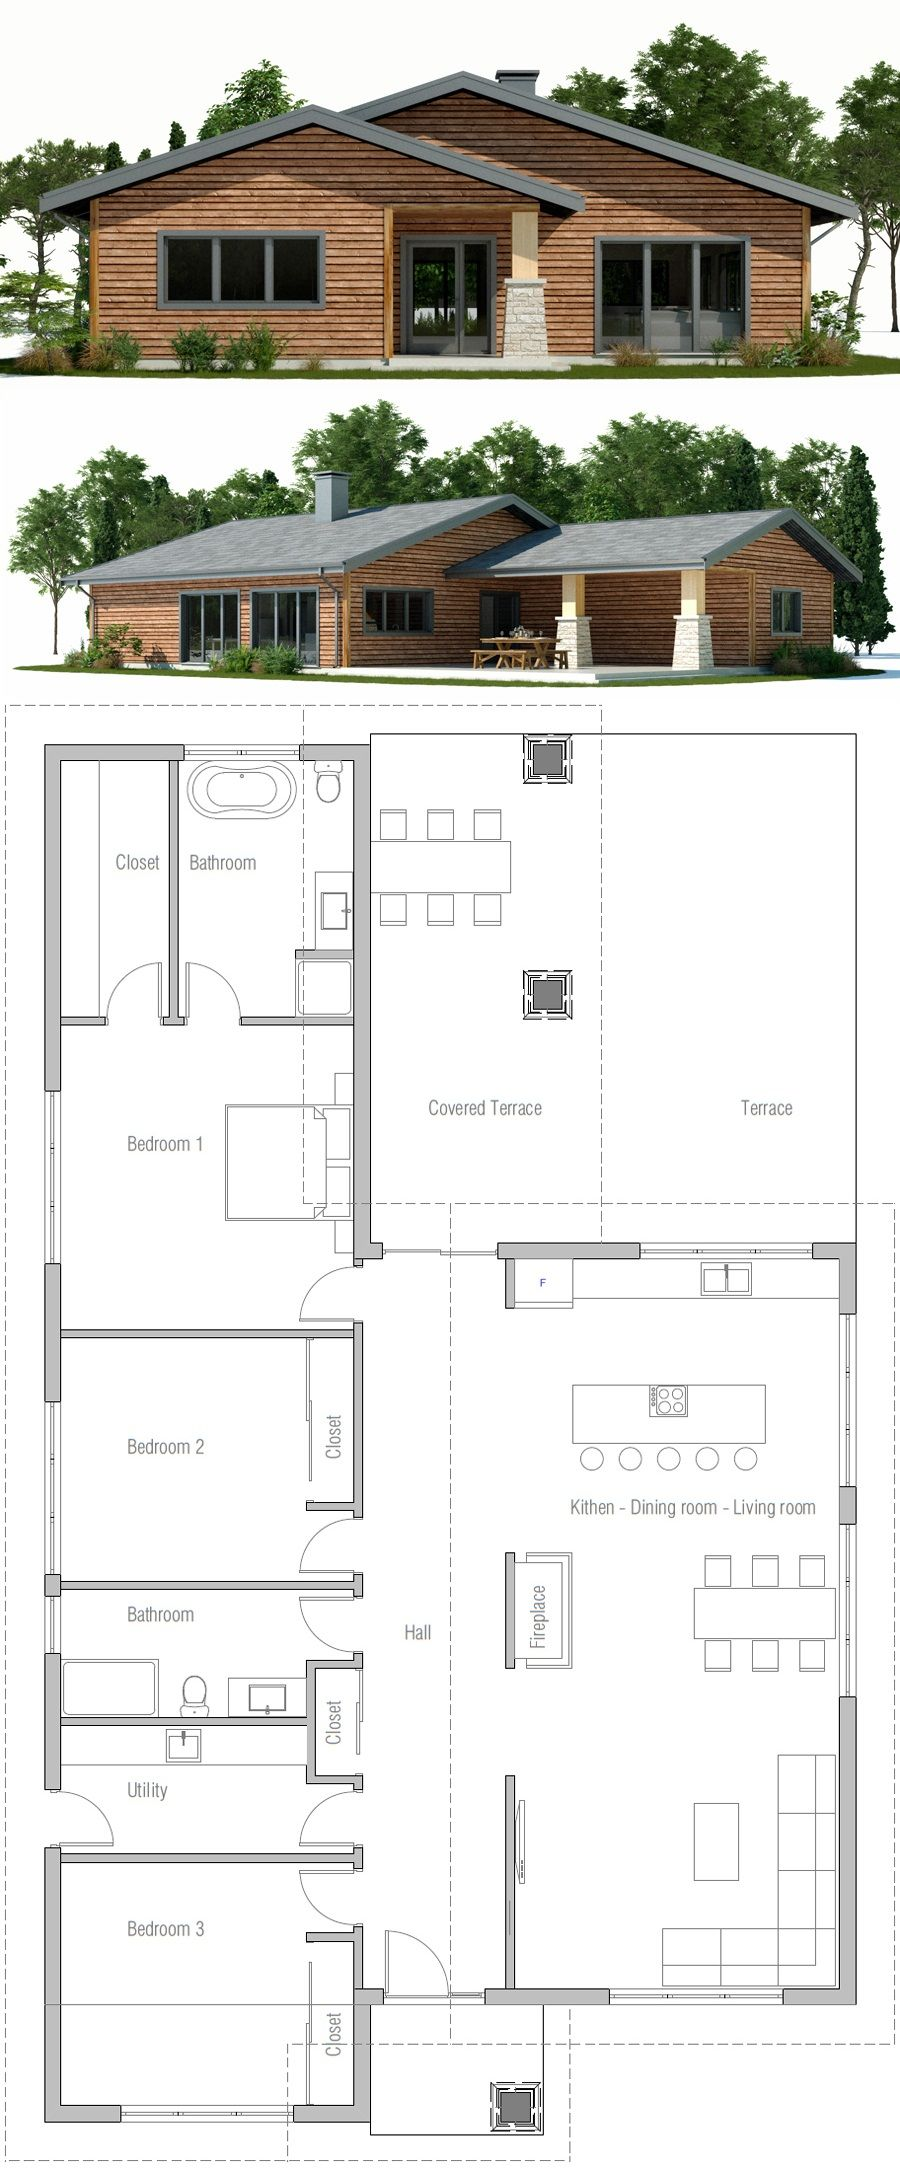 Plan de Maison | Arquitectura | Pinterest | House, Architecture and ...